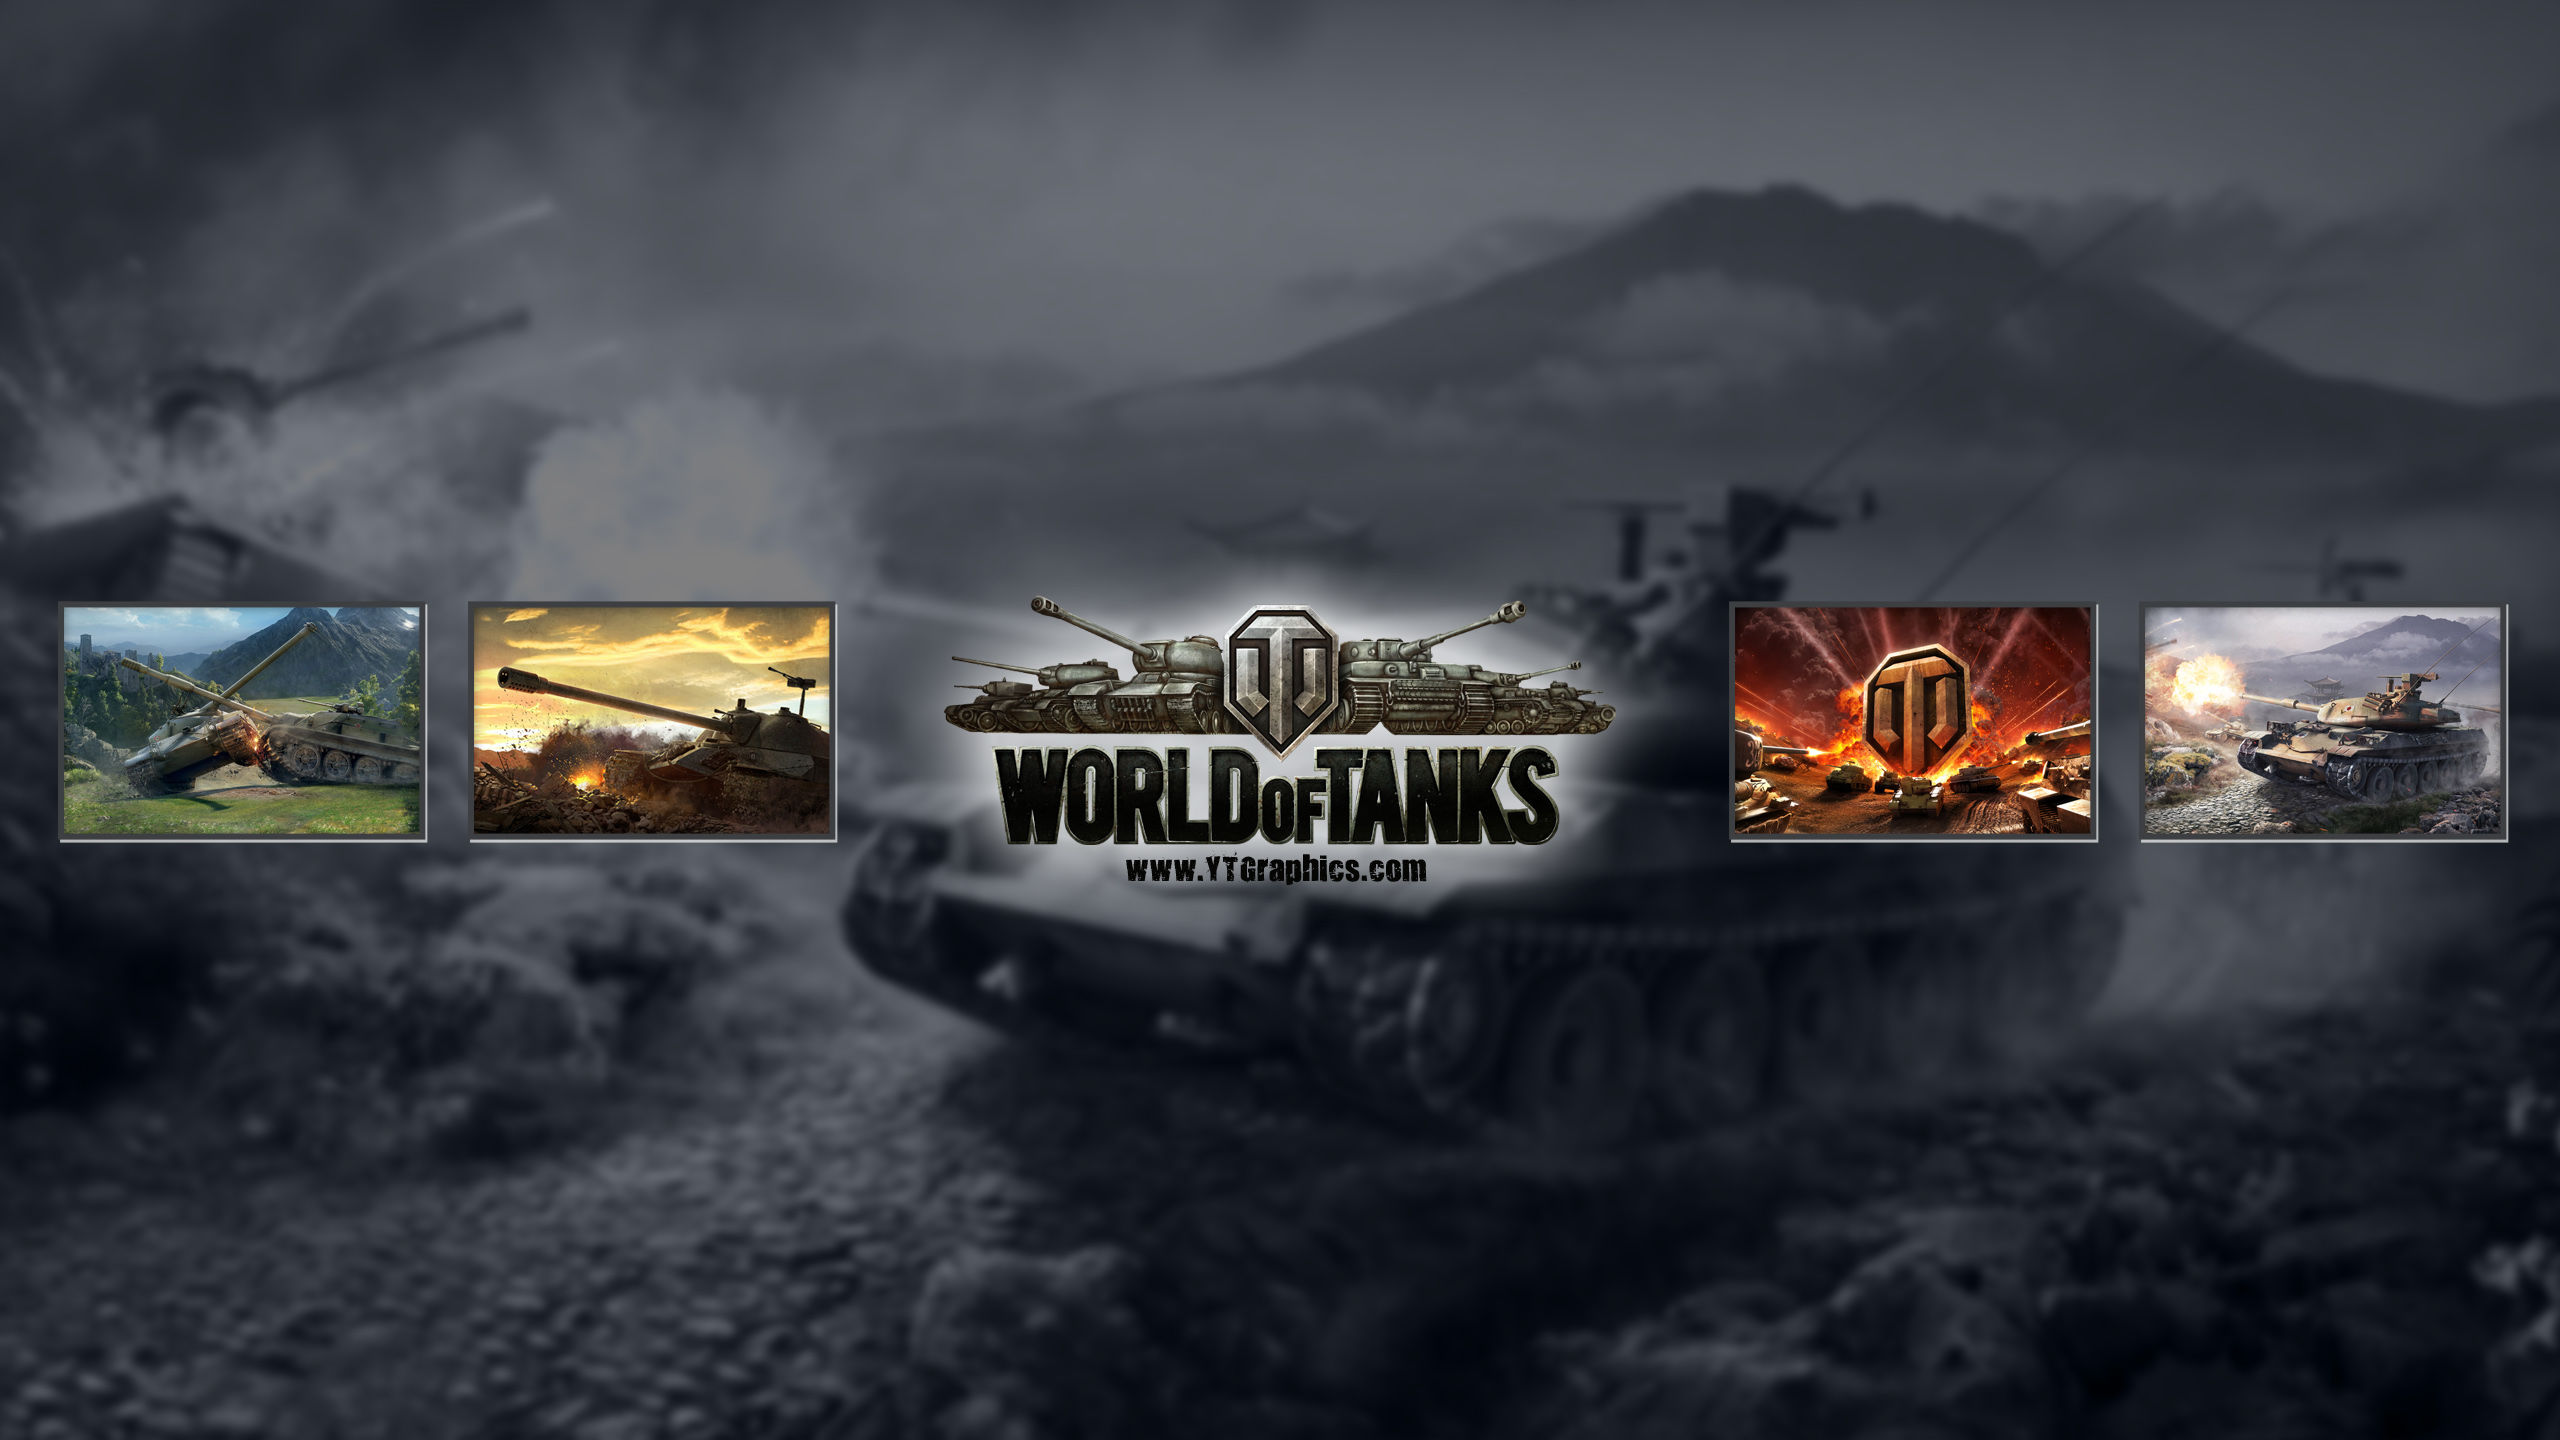 Pubg Wallpaper Template World Of Tanks Youtube Channel Art Banners